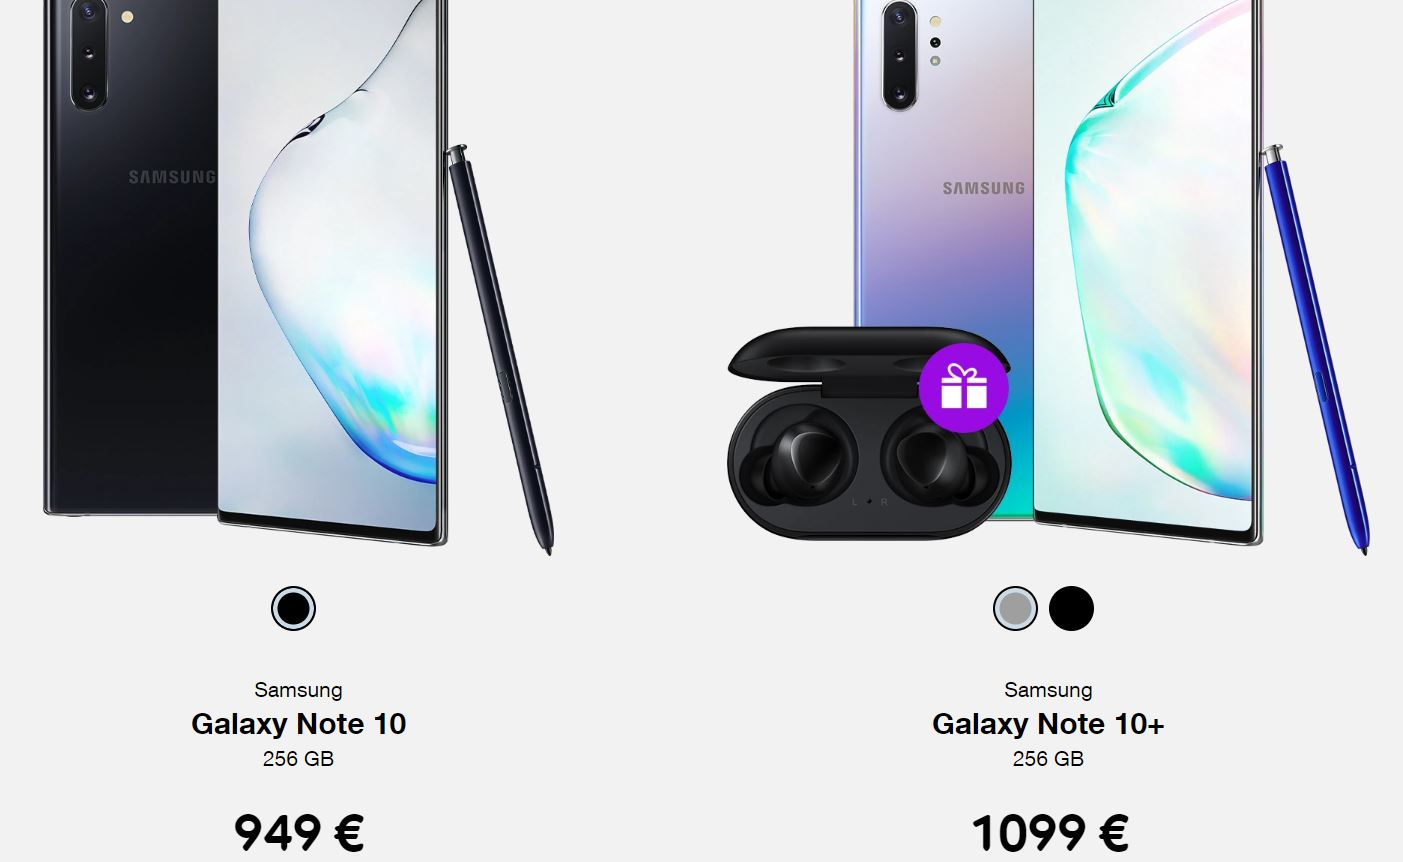 samsung-galaxy-note-10-plus-telia-nuti.mobi-2